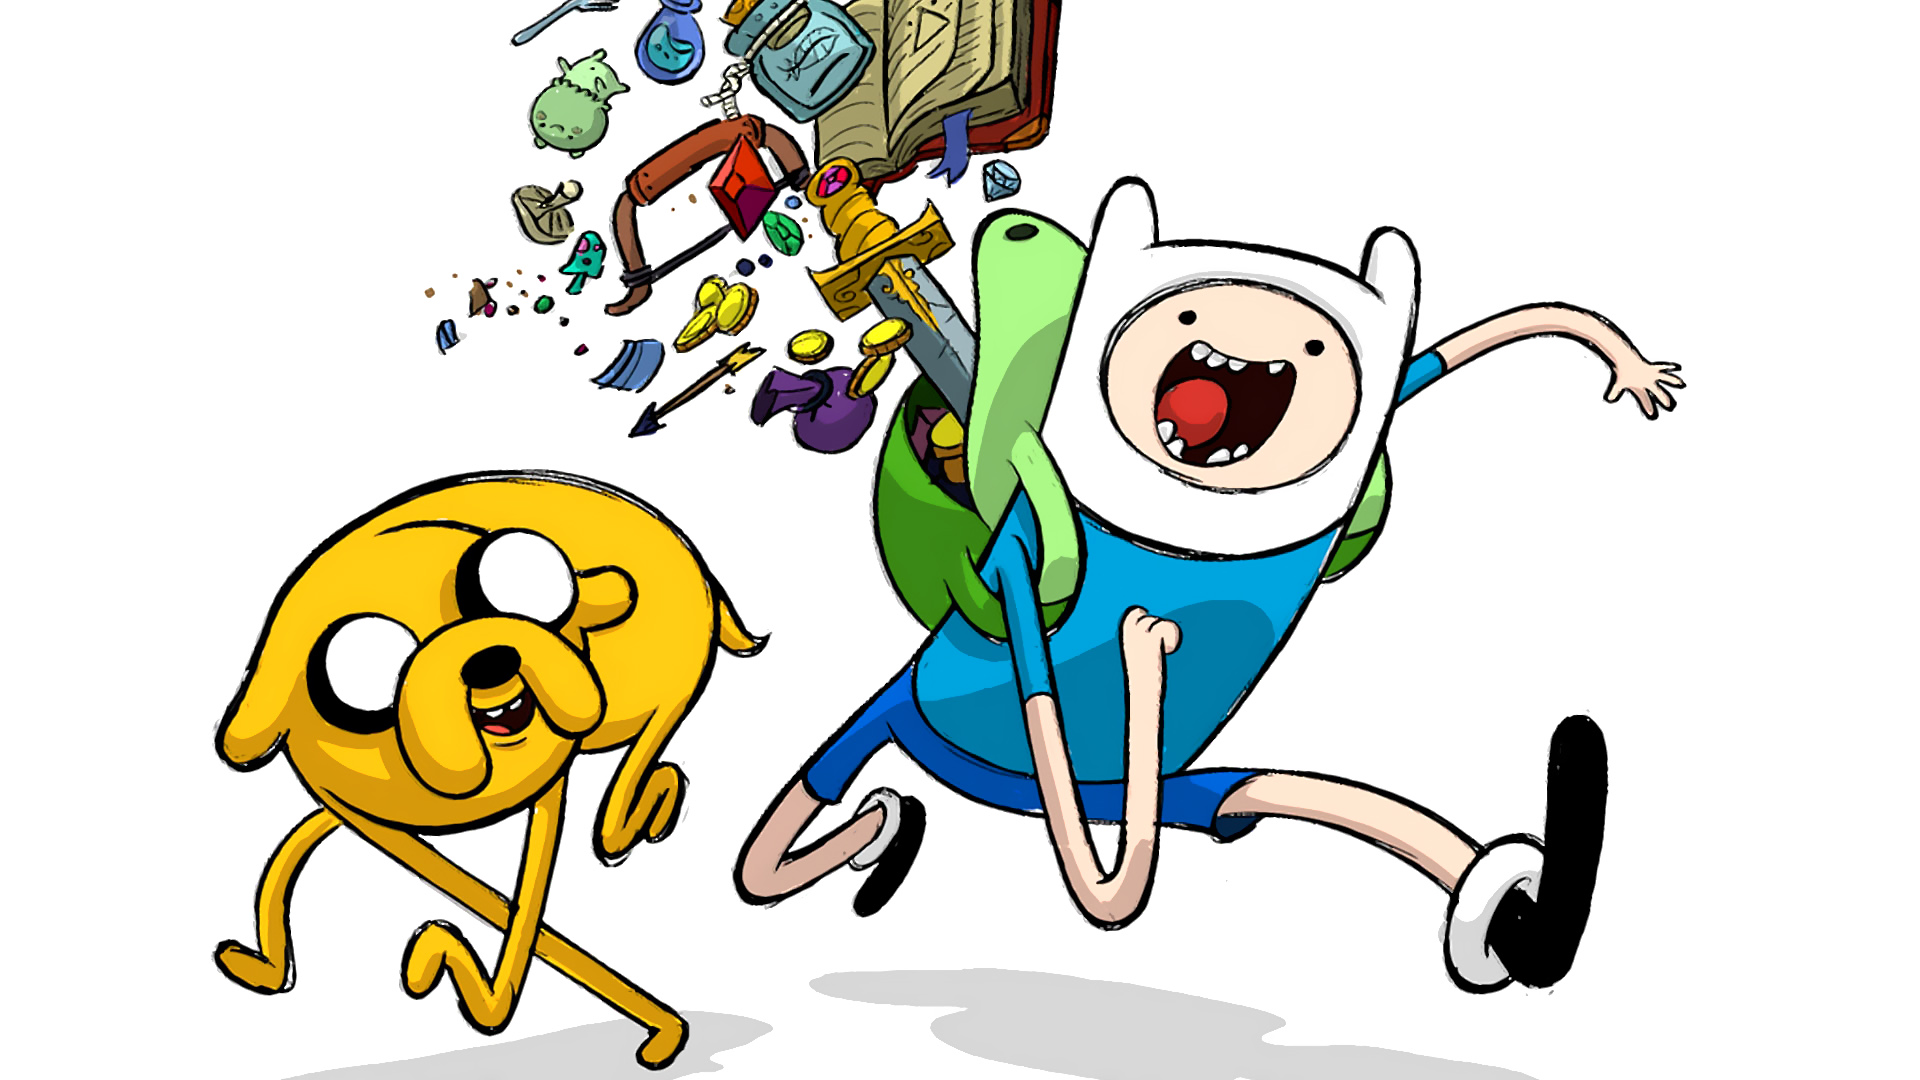 comment dessiner jake adventure time